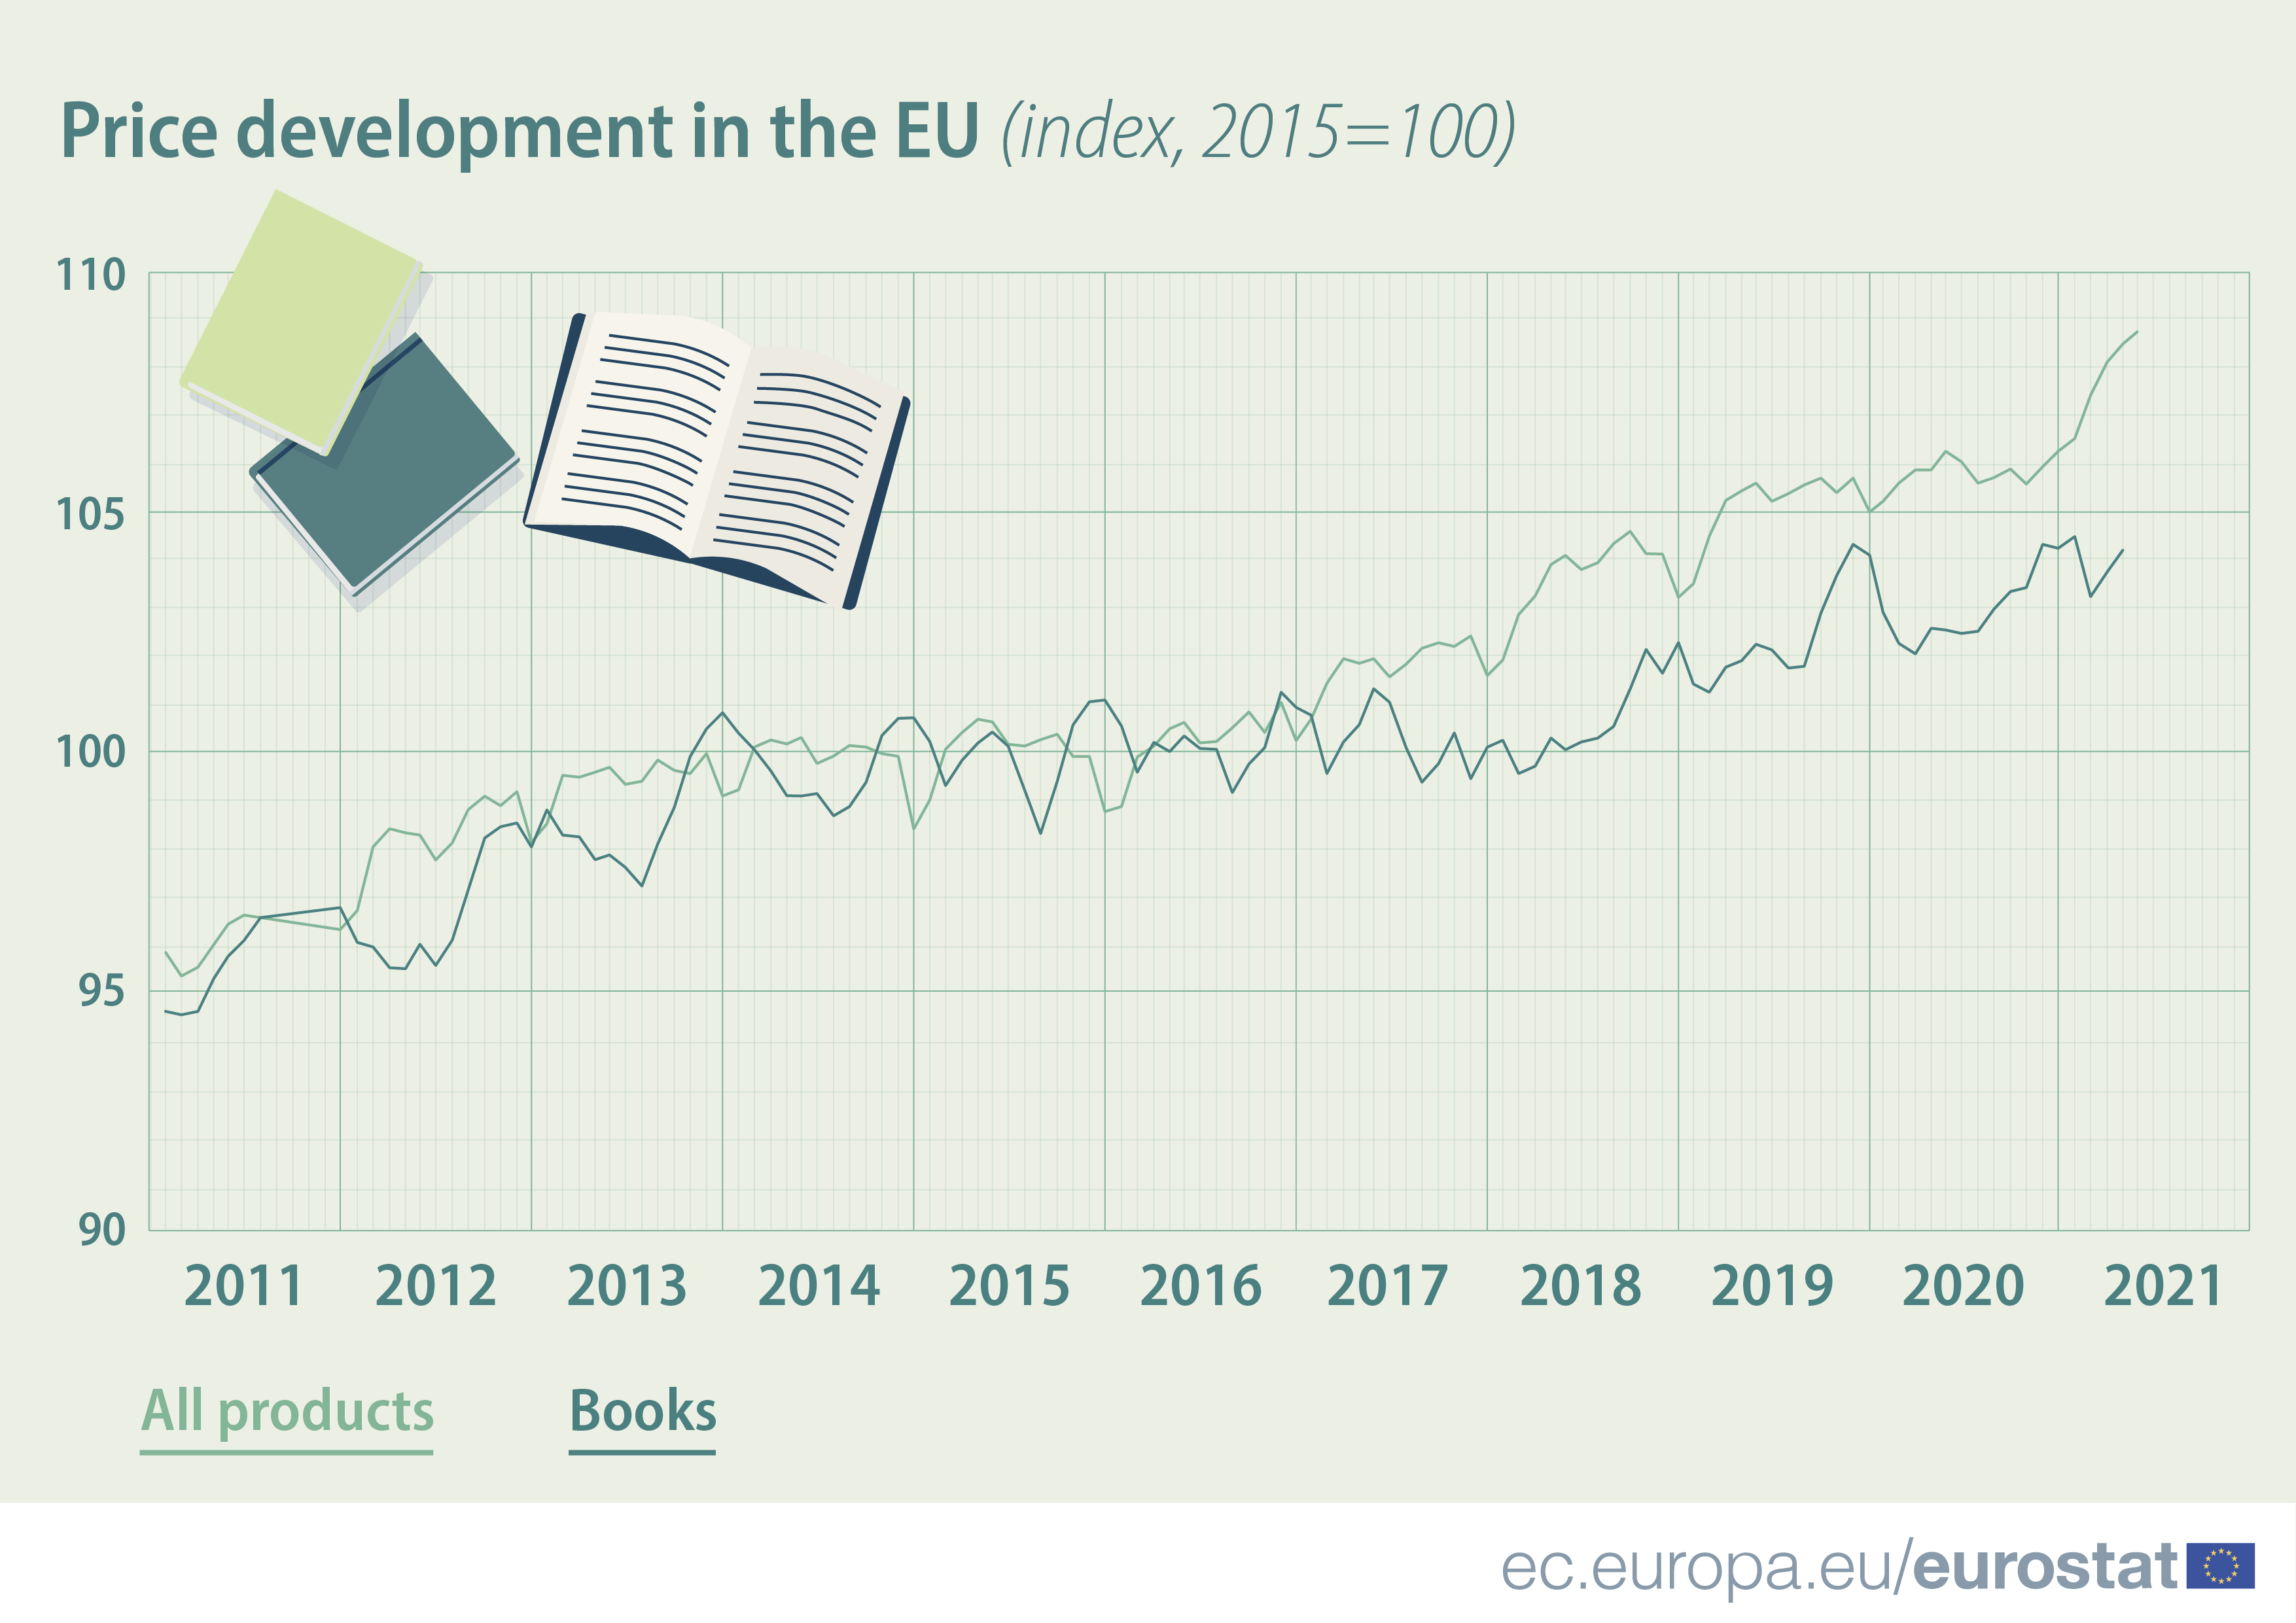 this chart shows that book prices in the European Union are growing more slowly than consumer goods overall